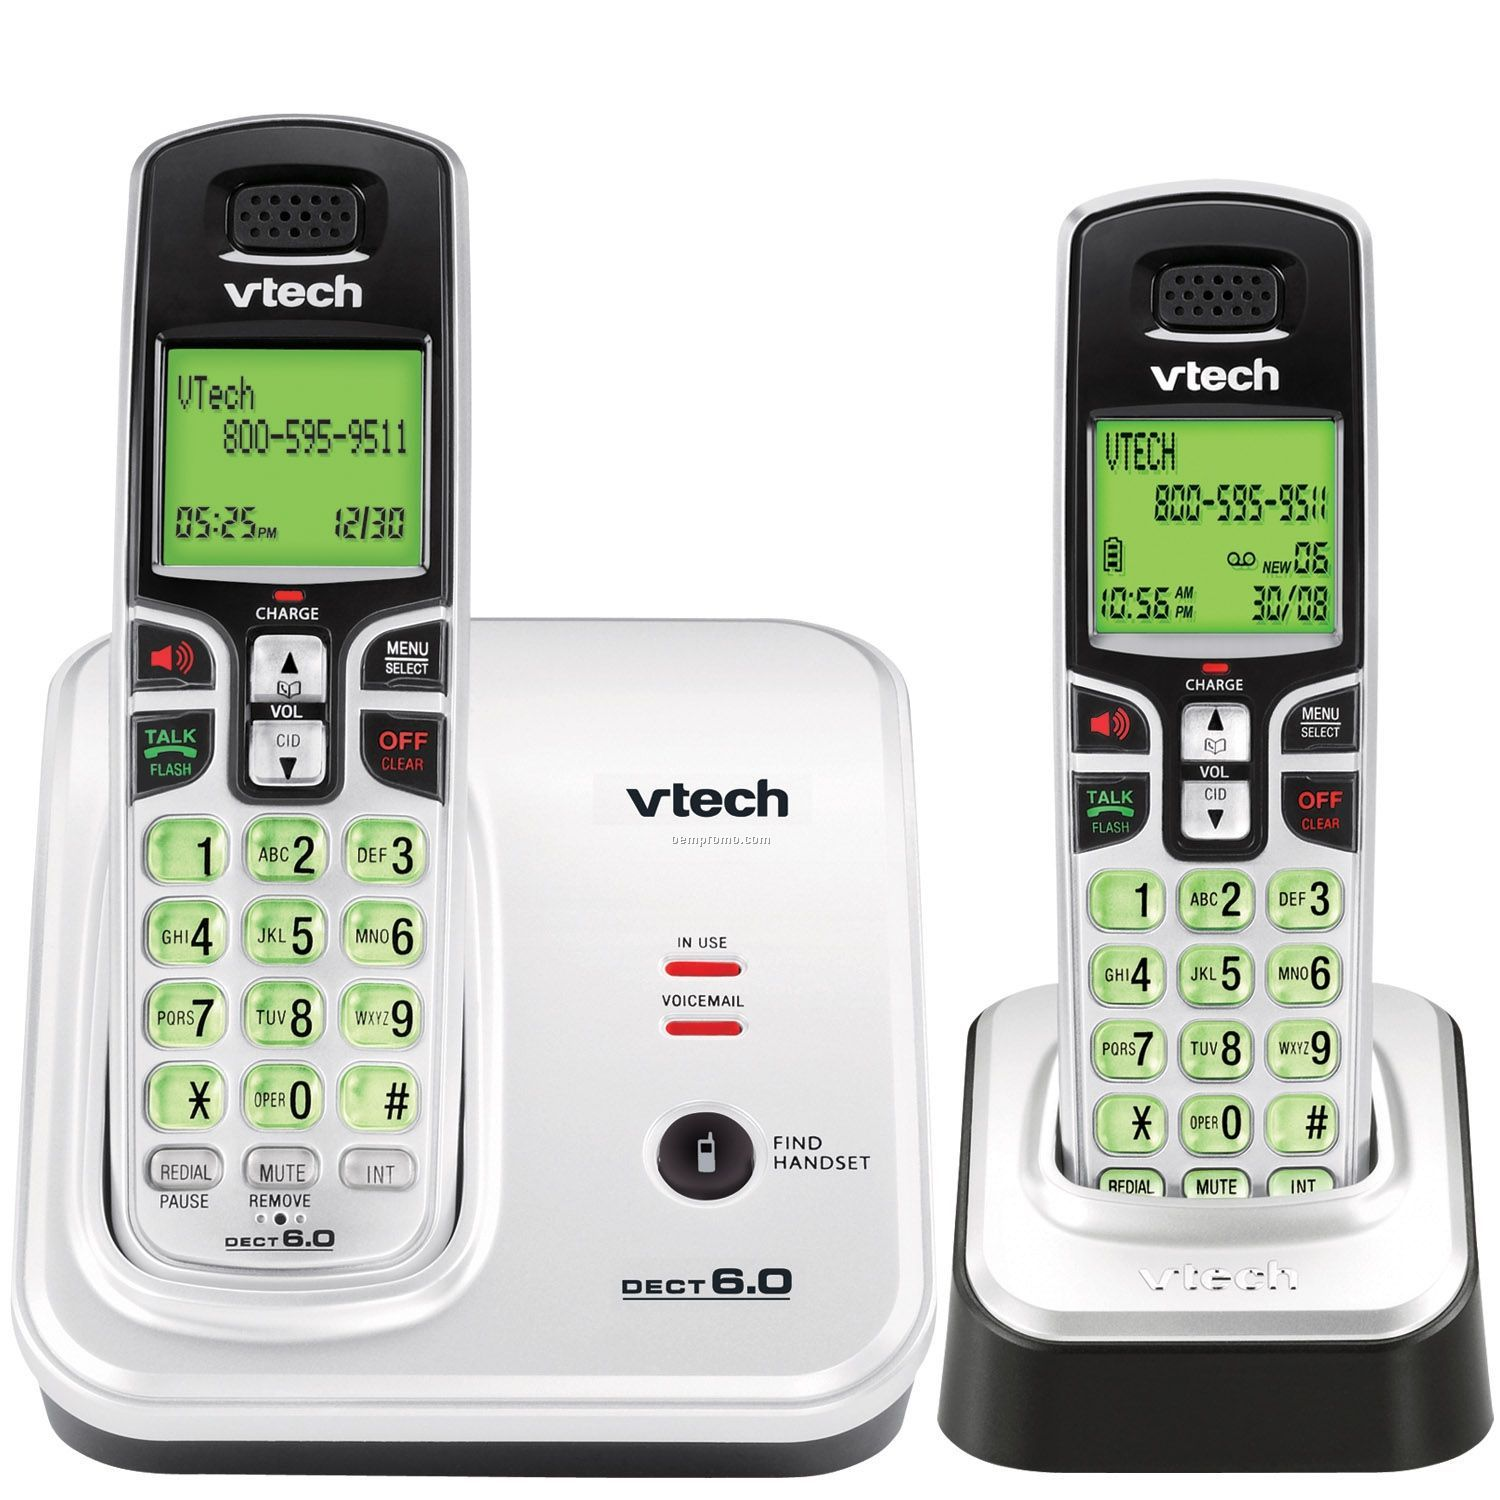 How to use a vtech coupon If you recently purchased VTech products recently, check the packaging for promotional offers that can be redeemed online. Vtech offers free shipping on orders over $ Join the VTech Club (free) to get a coupon for 20% off your next purchase. Shop their